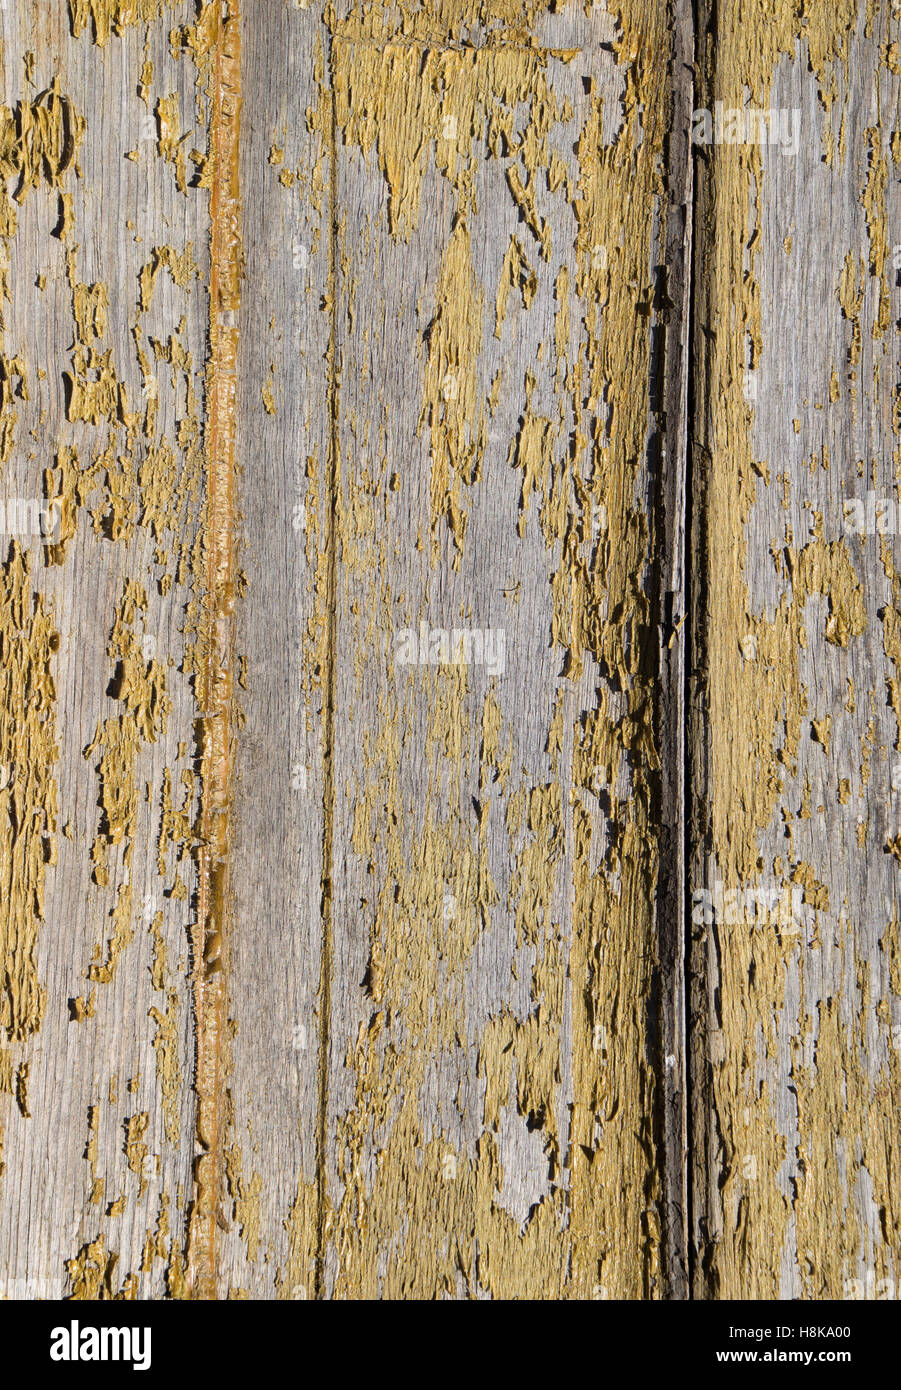 Close up of a panel from a weathered vintage screen door that has yellowed peeling varnish and bare wood, in natural - Stock Image